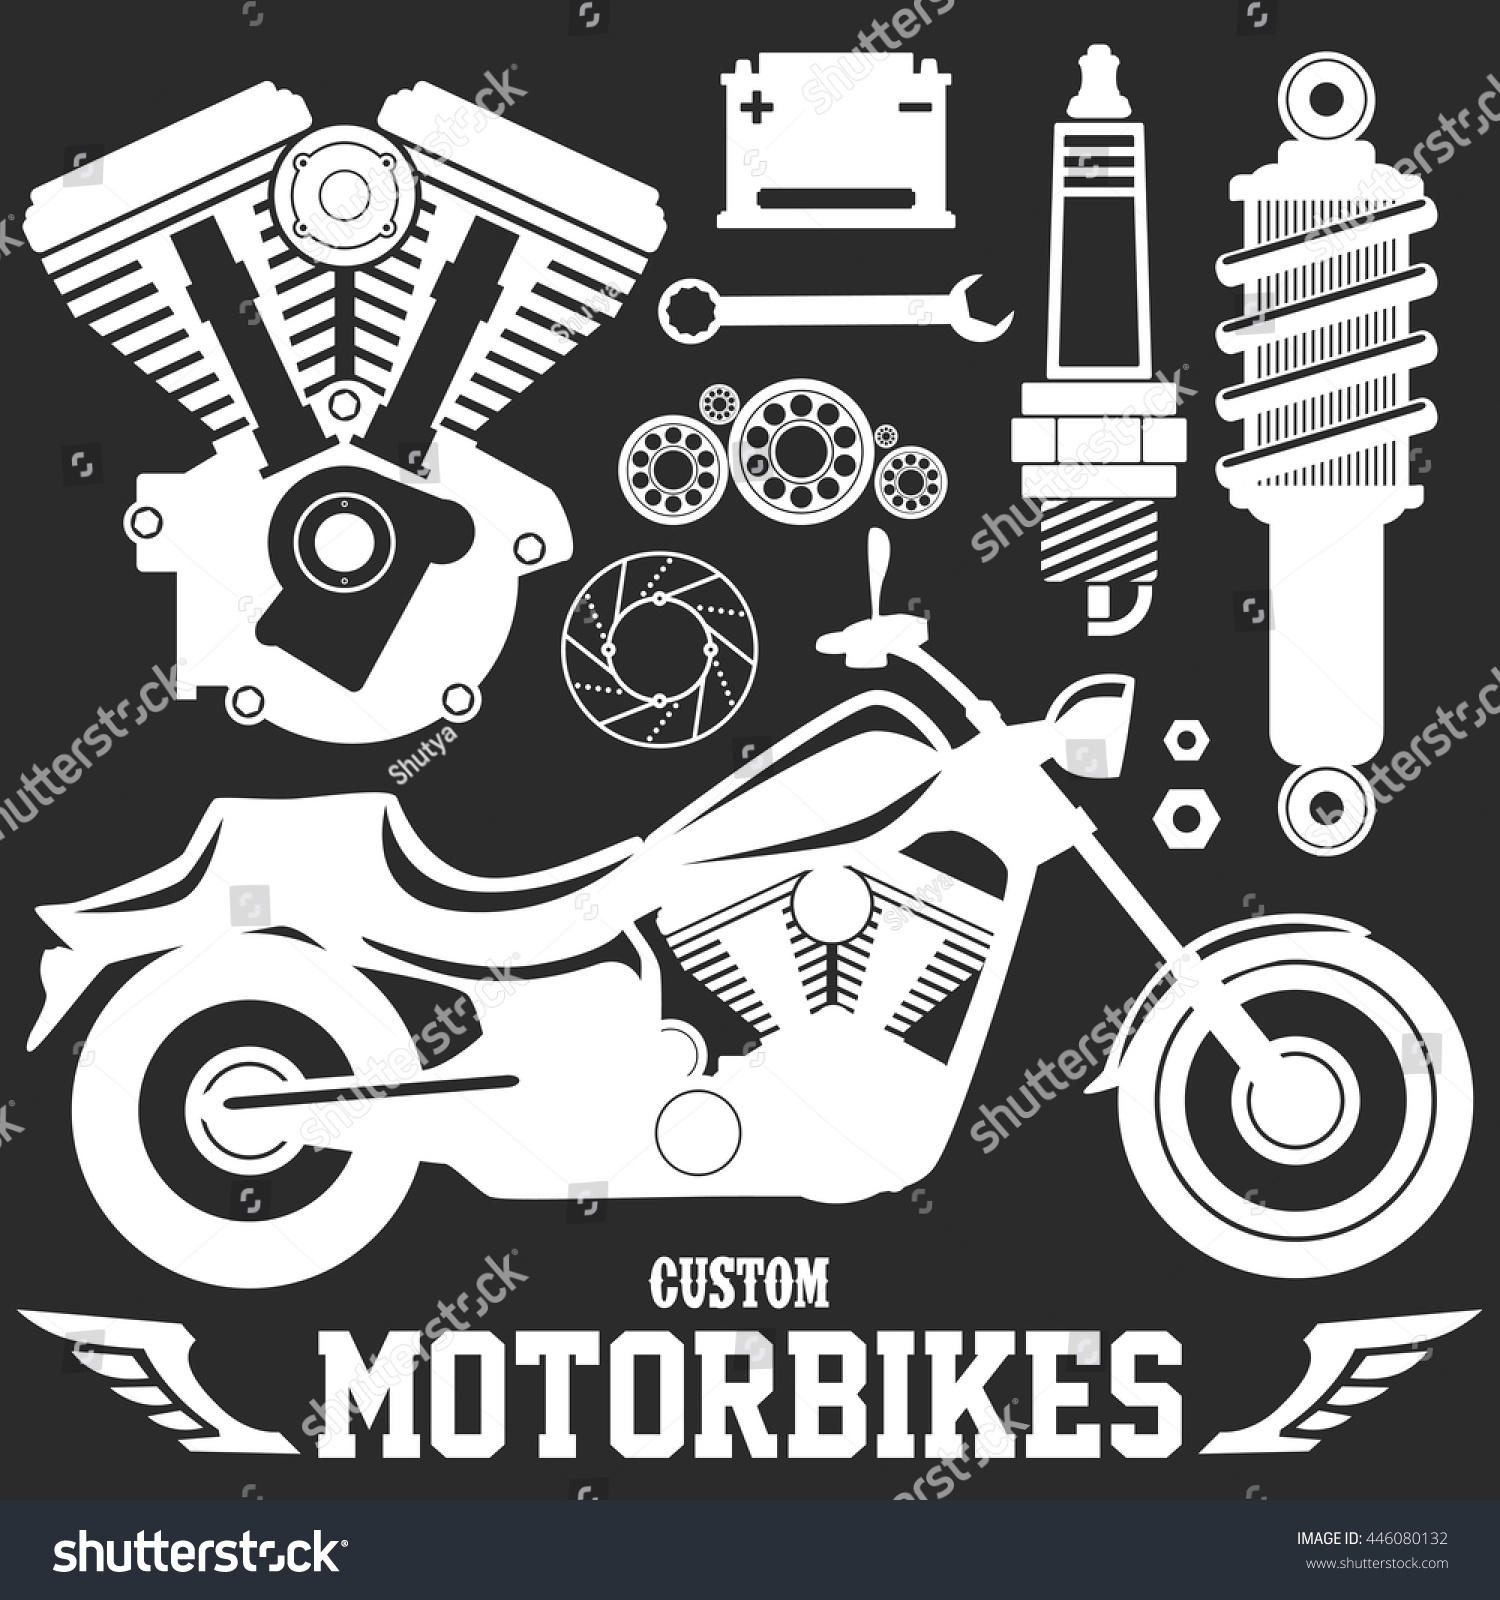 Parts of a poster design - Motorcycle Parts Bike Custom Garage Items V Twin Engine Piston Brake